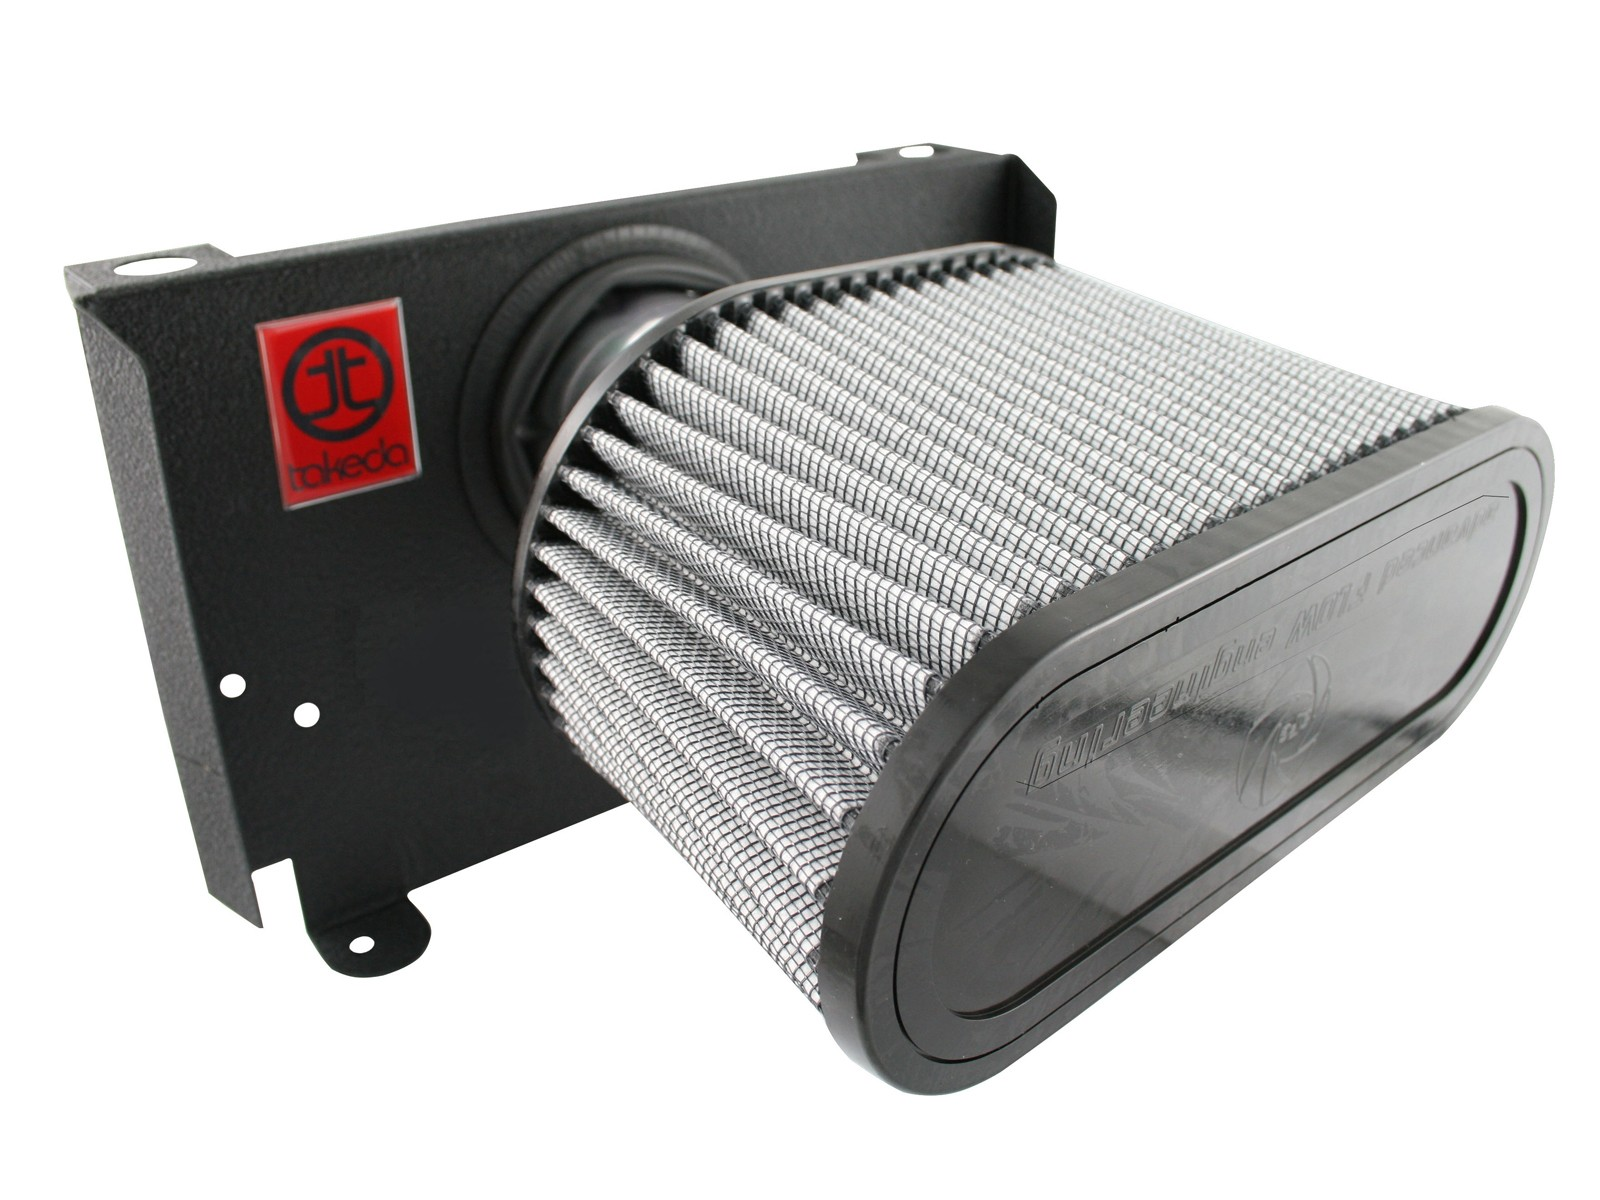 aFe POWER TR-4104P Takeda Stage-2 Pro DRY S Cold Air Intake System